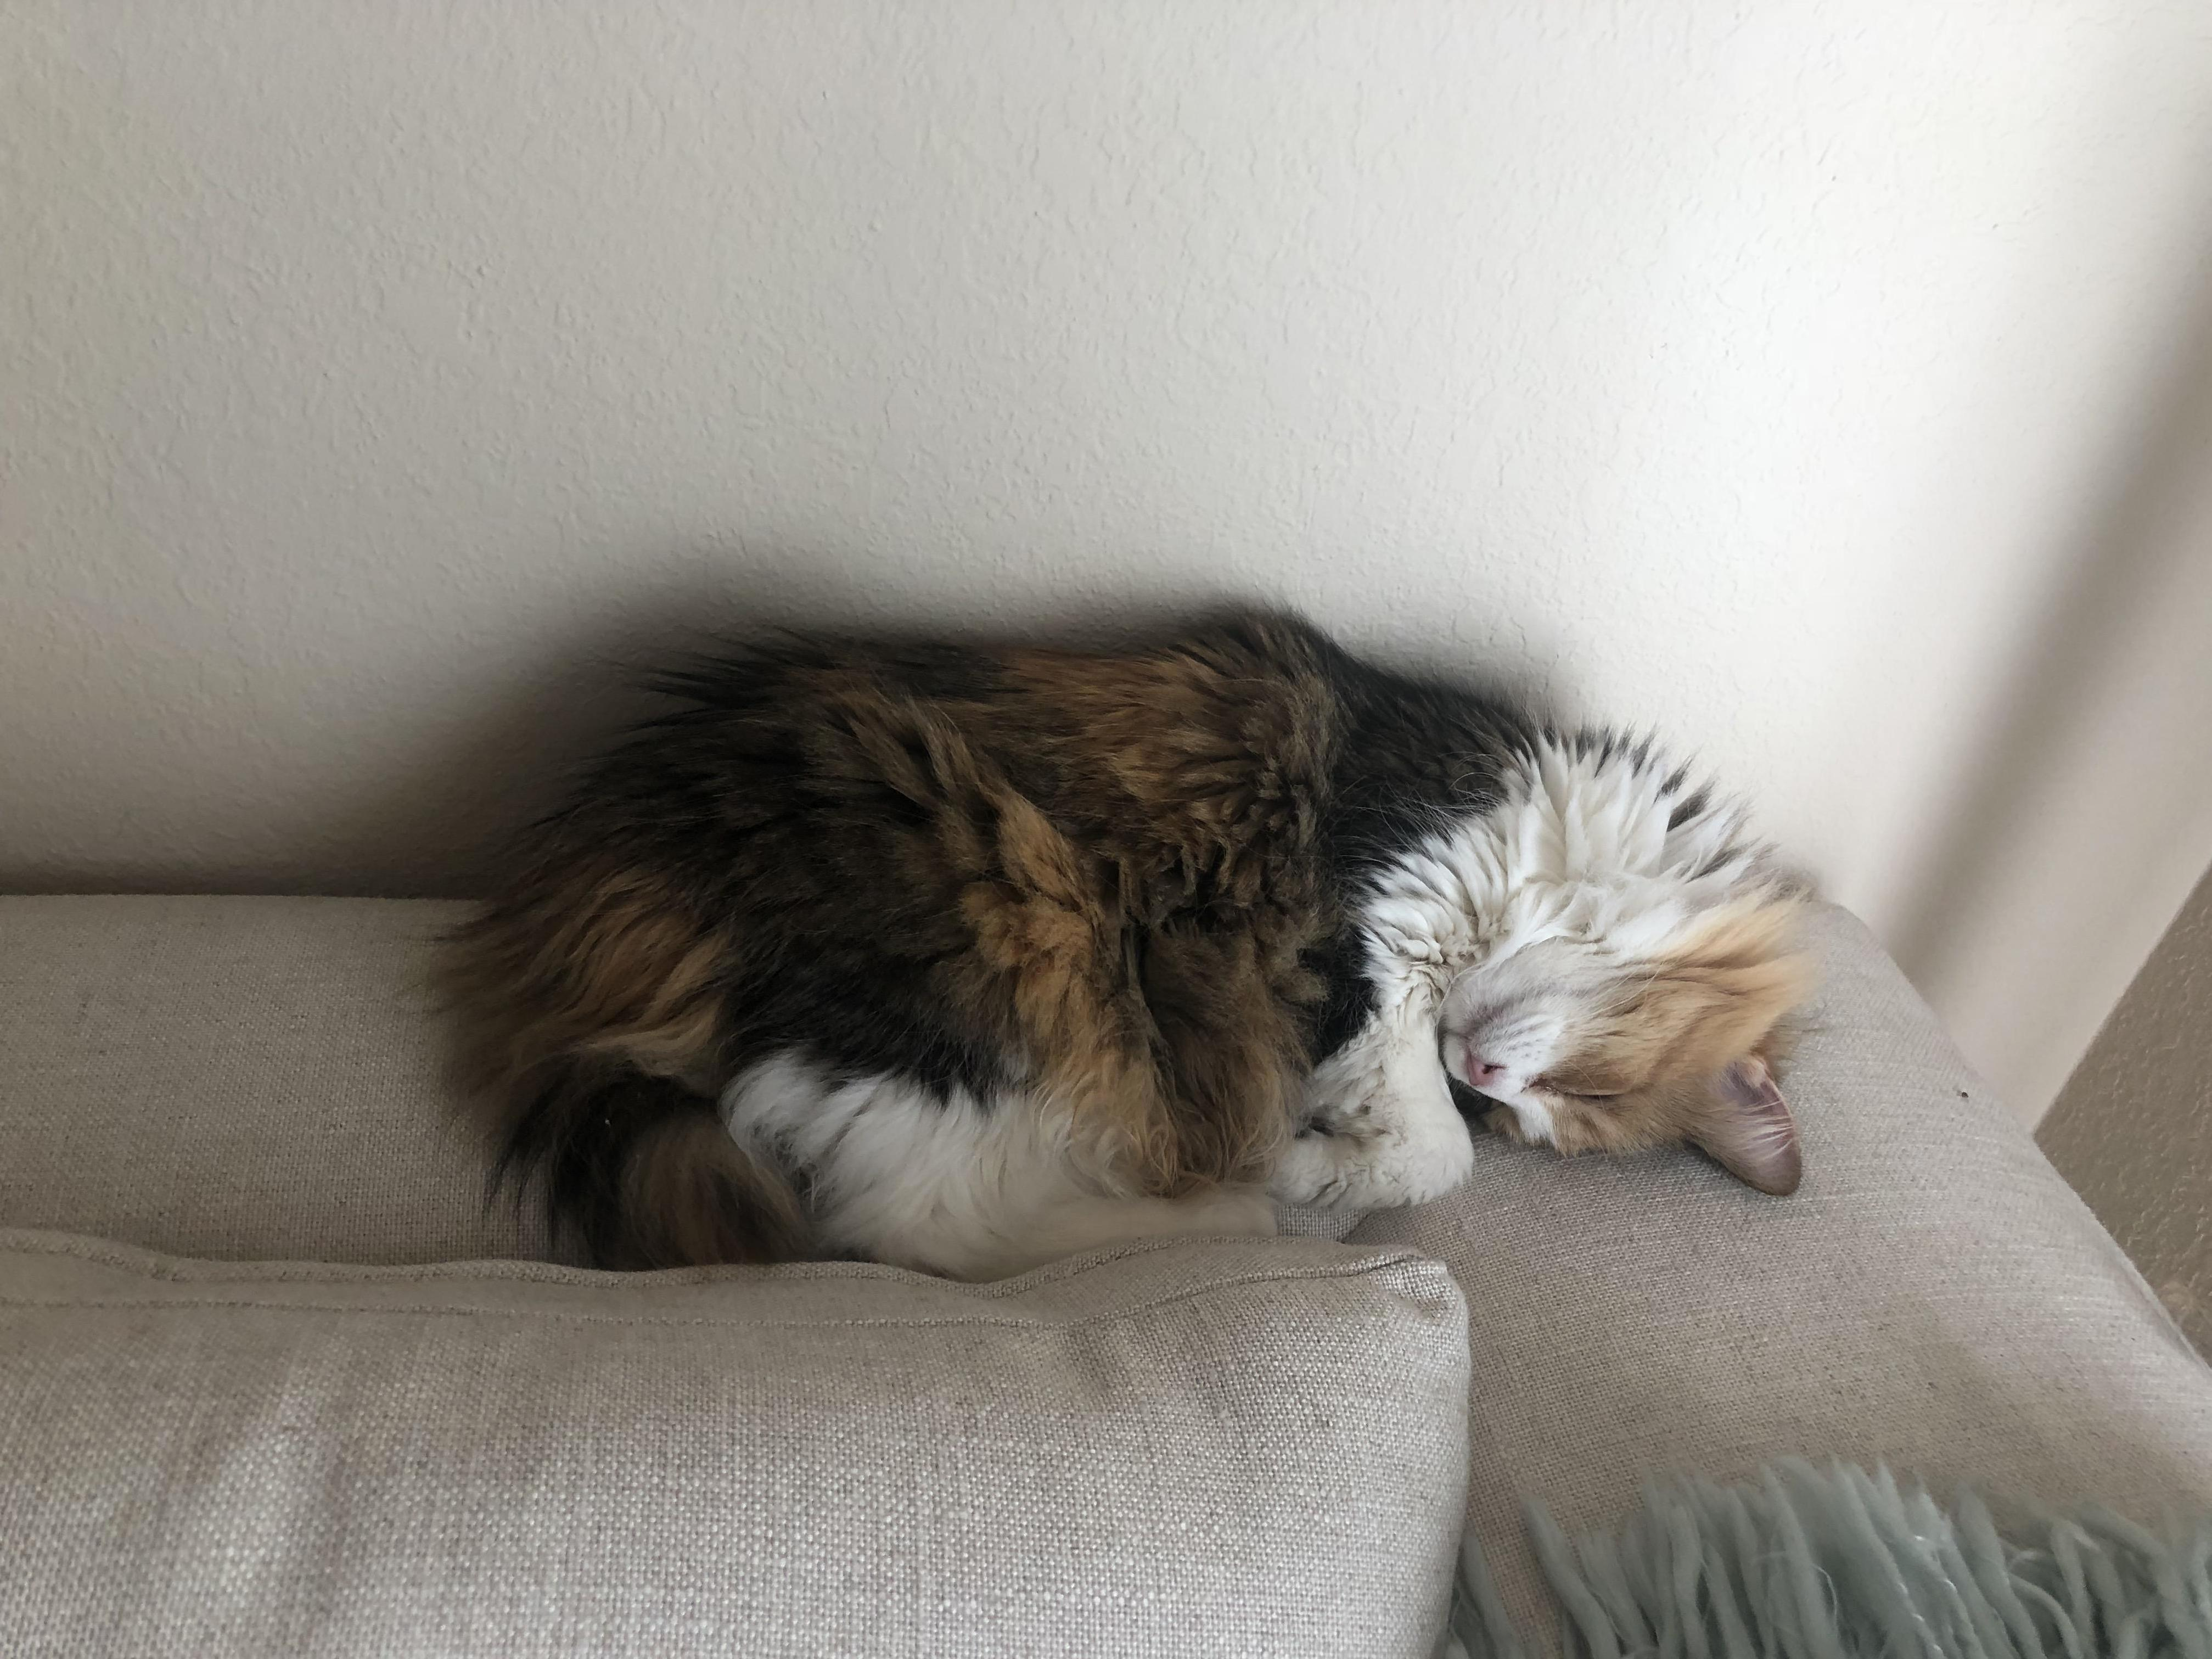 When youre adopted cat crashes on your couch and realizes she is home. reddit, meet callie.